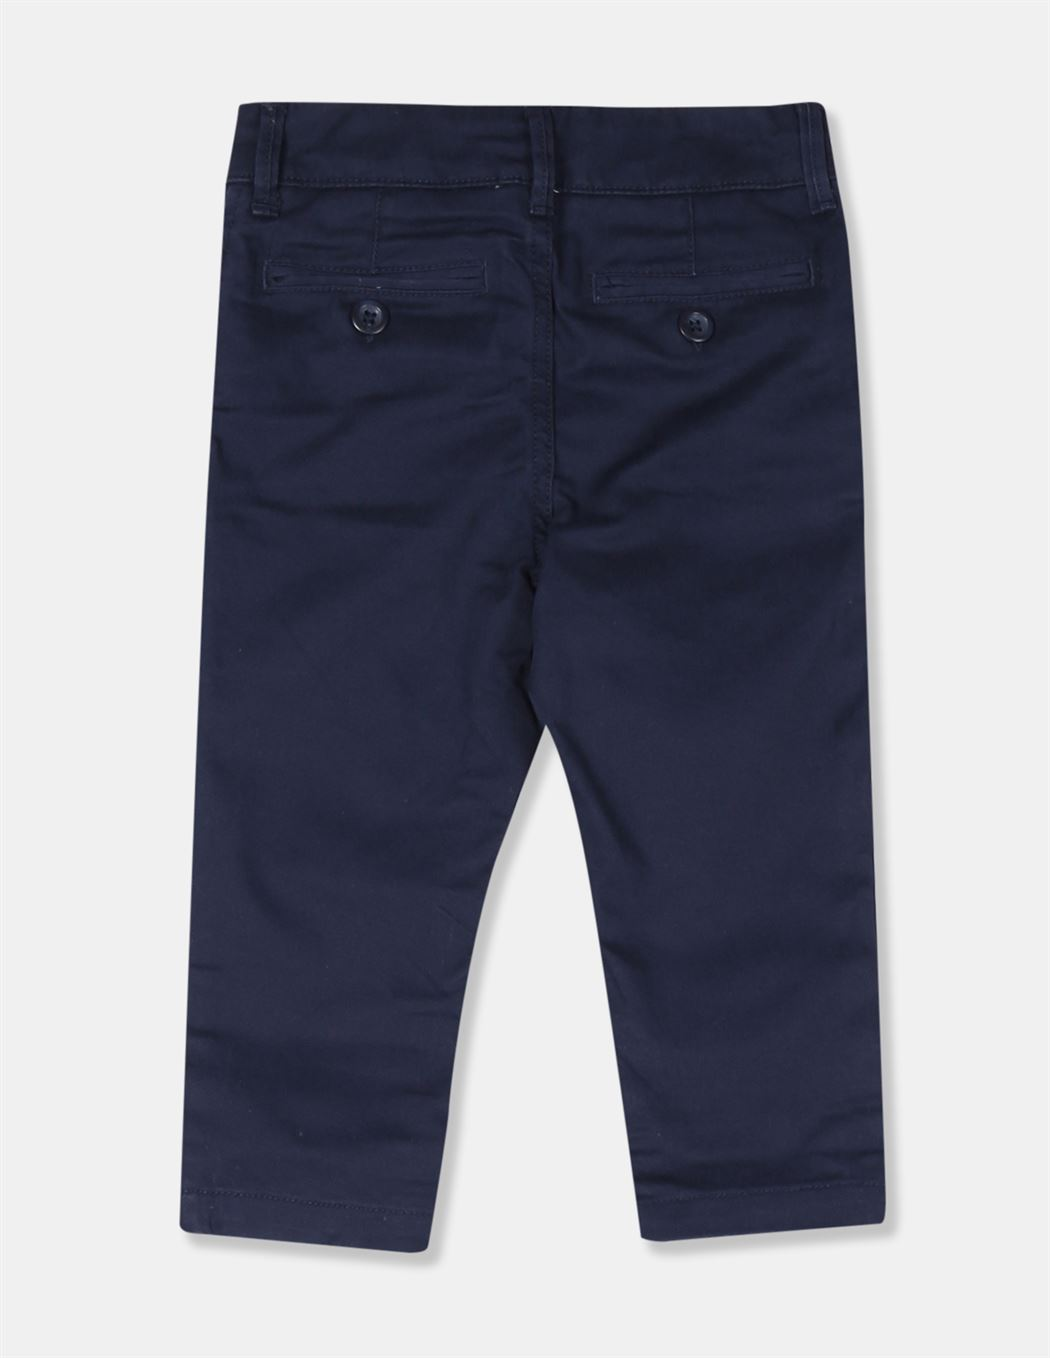 GAP Boys Blue Solid Trousers